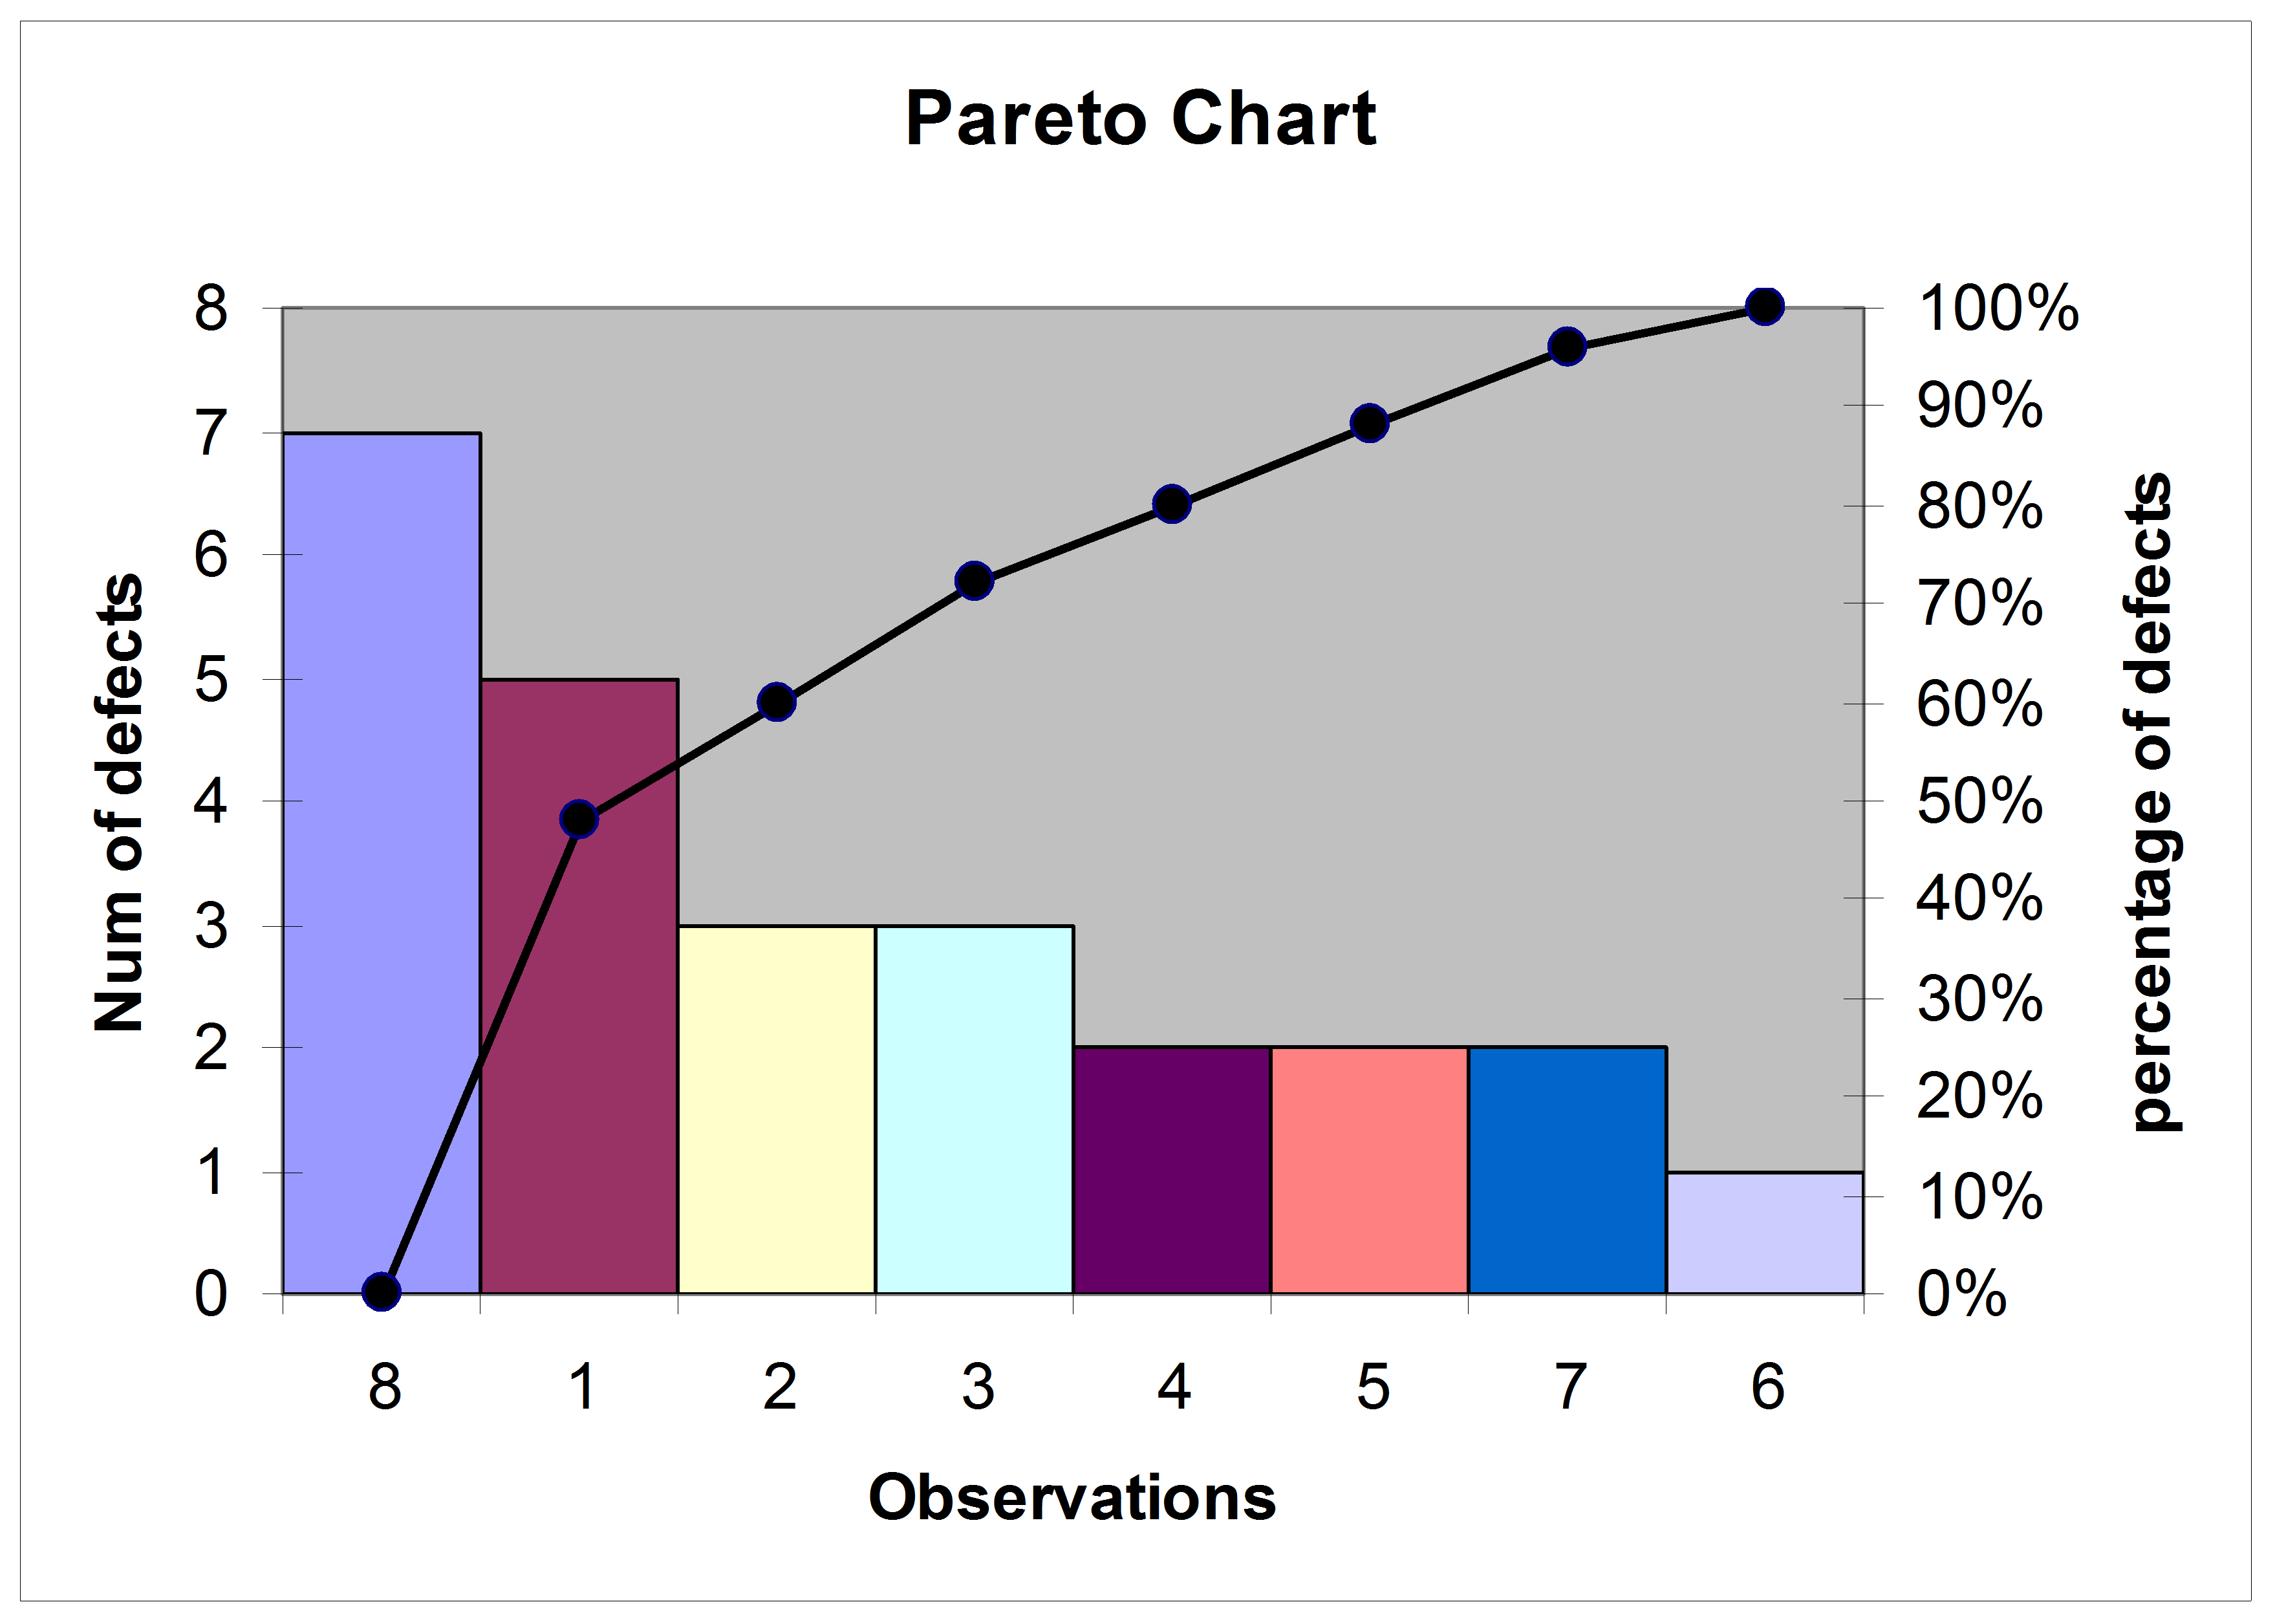 Pareto Chart Images | Crazy Gallery